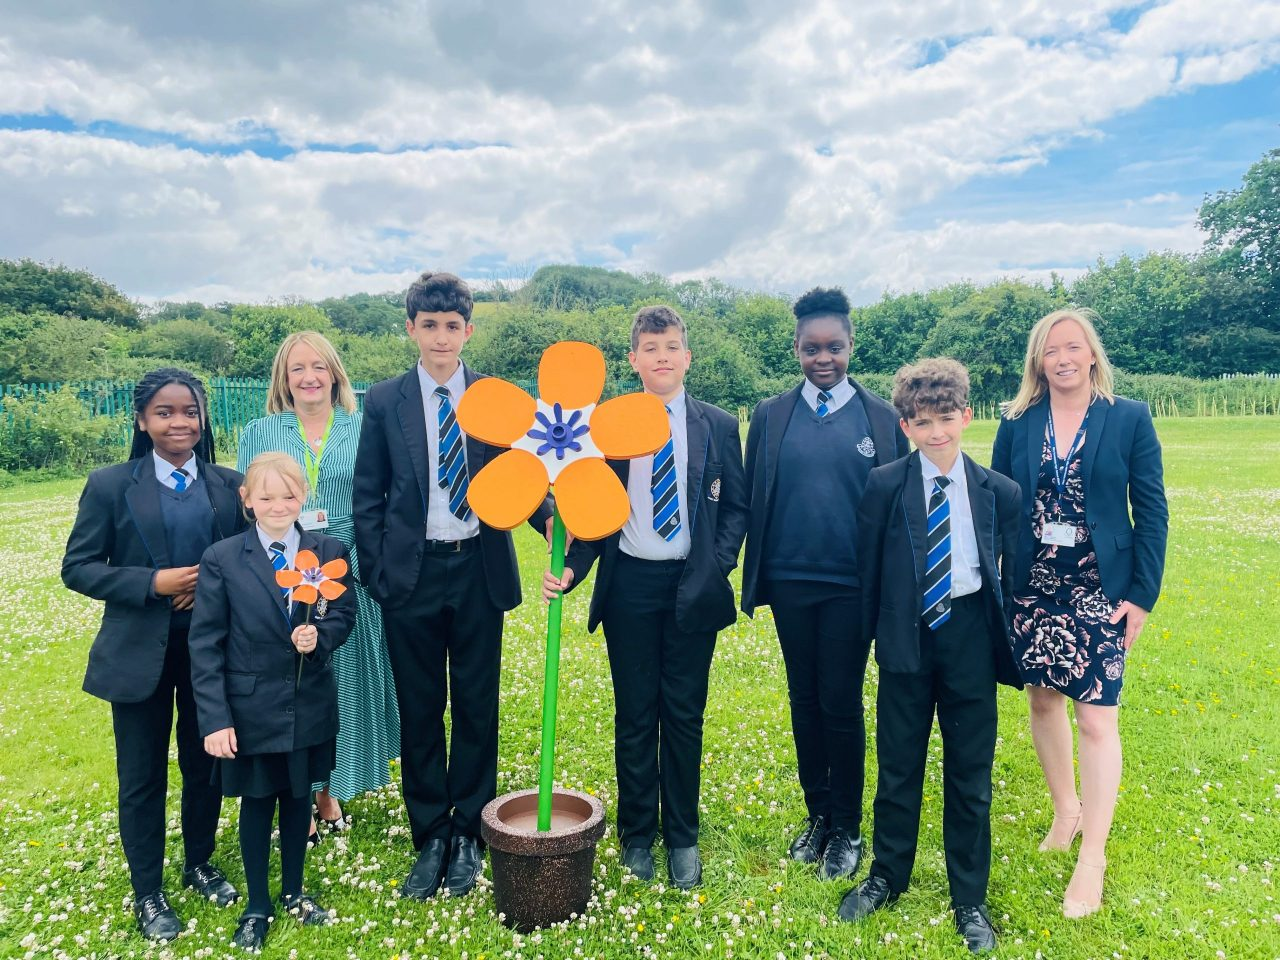 School to remember lost loved ones with Forever Flowers garden